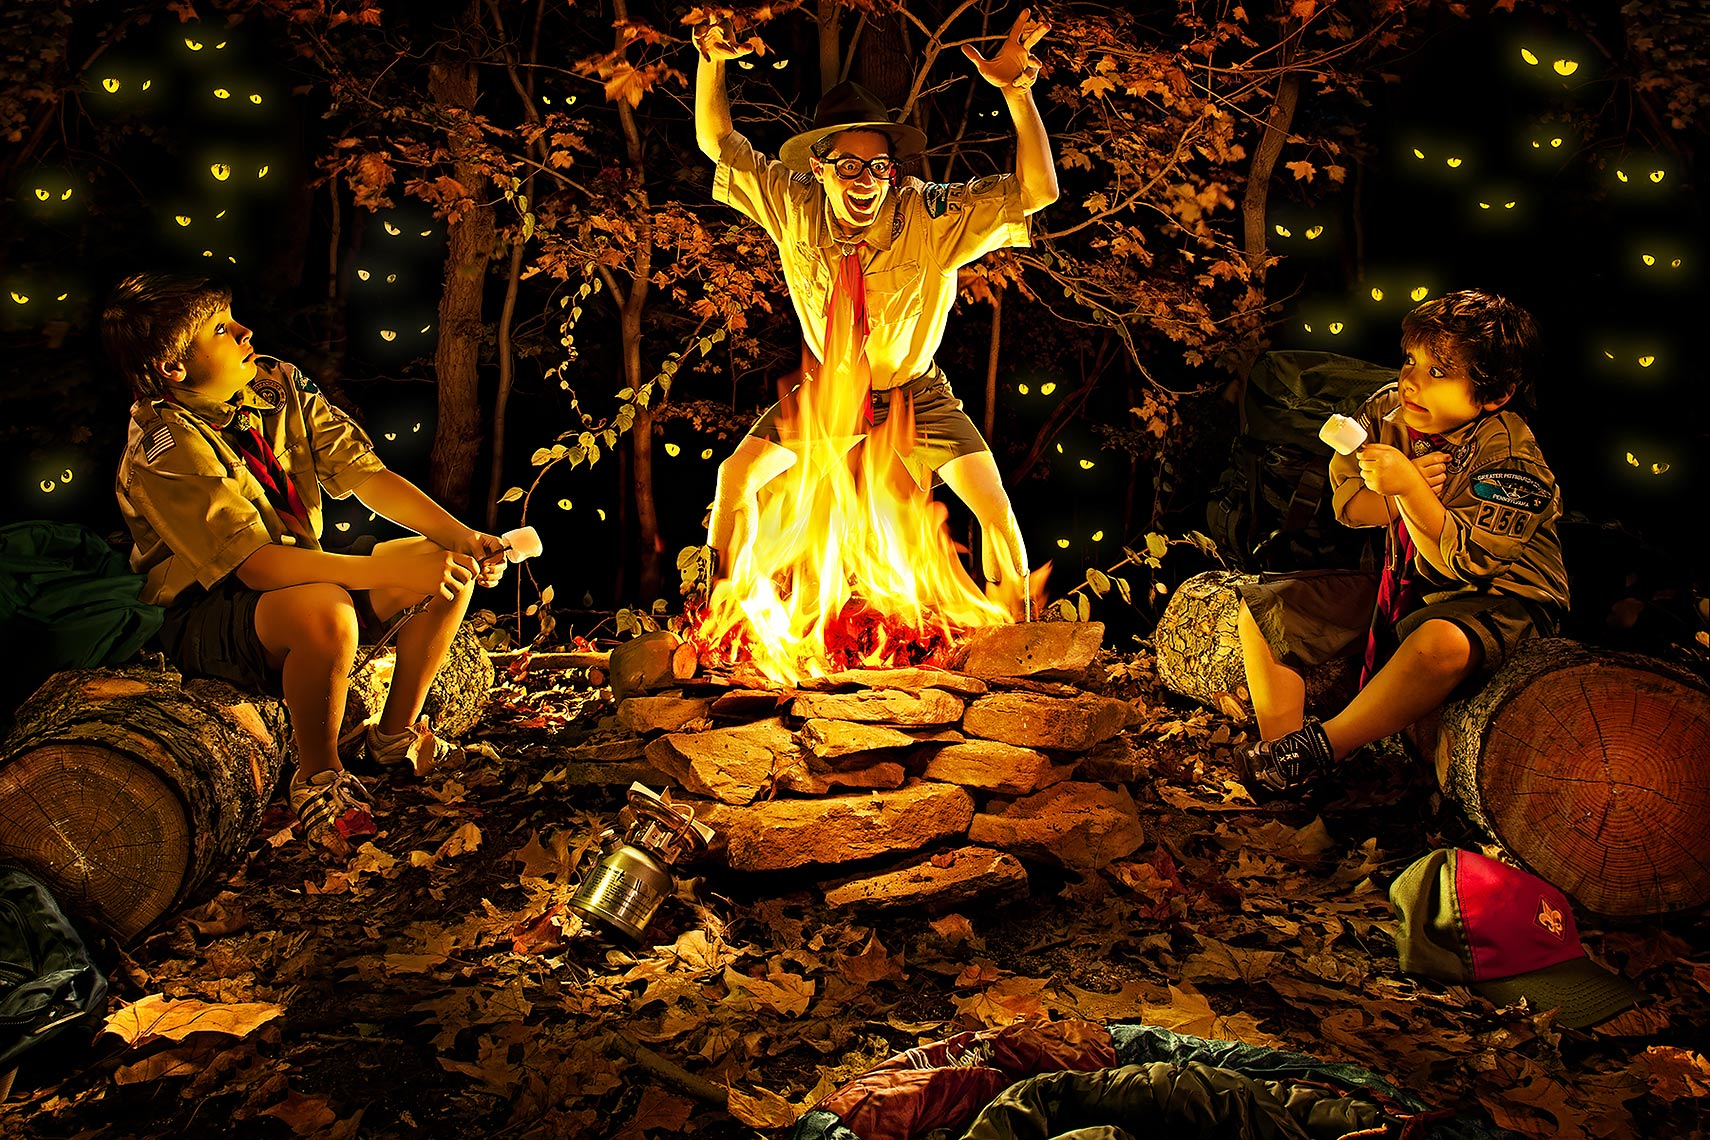 Campfire clipart storytelling. Illustration group of for